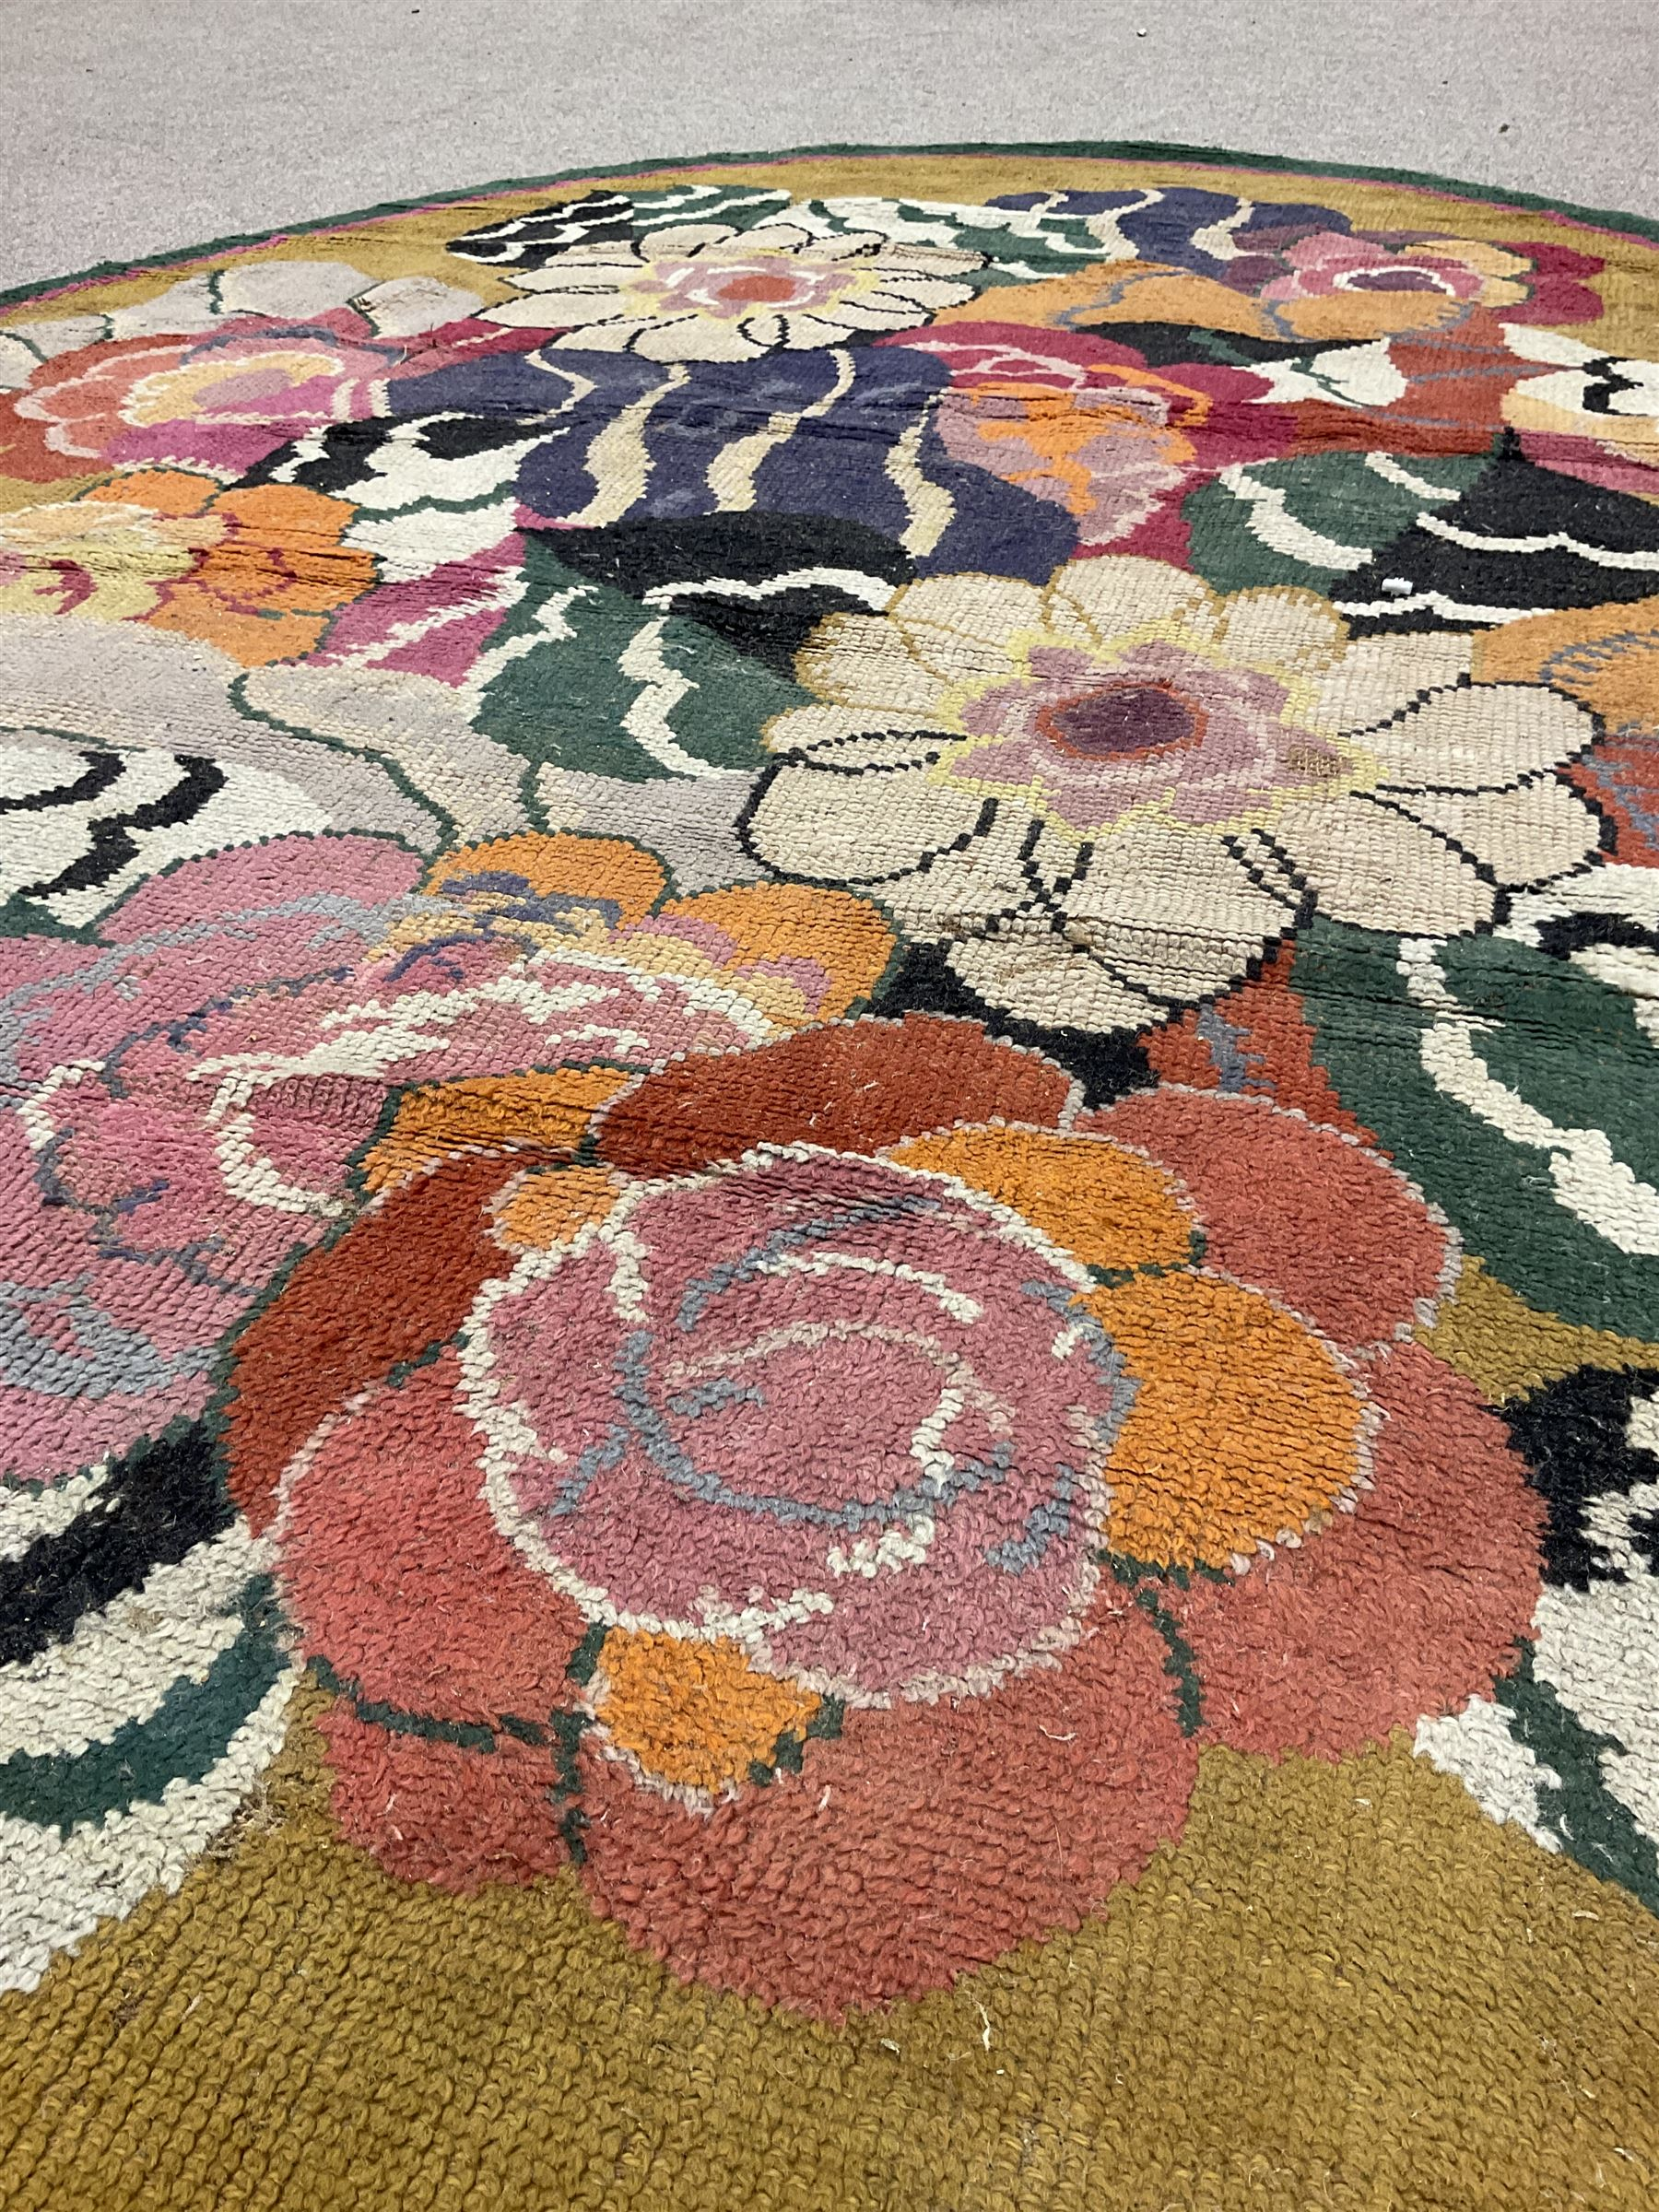 20th century wool oval rug - Image 2 of 5